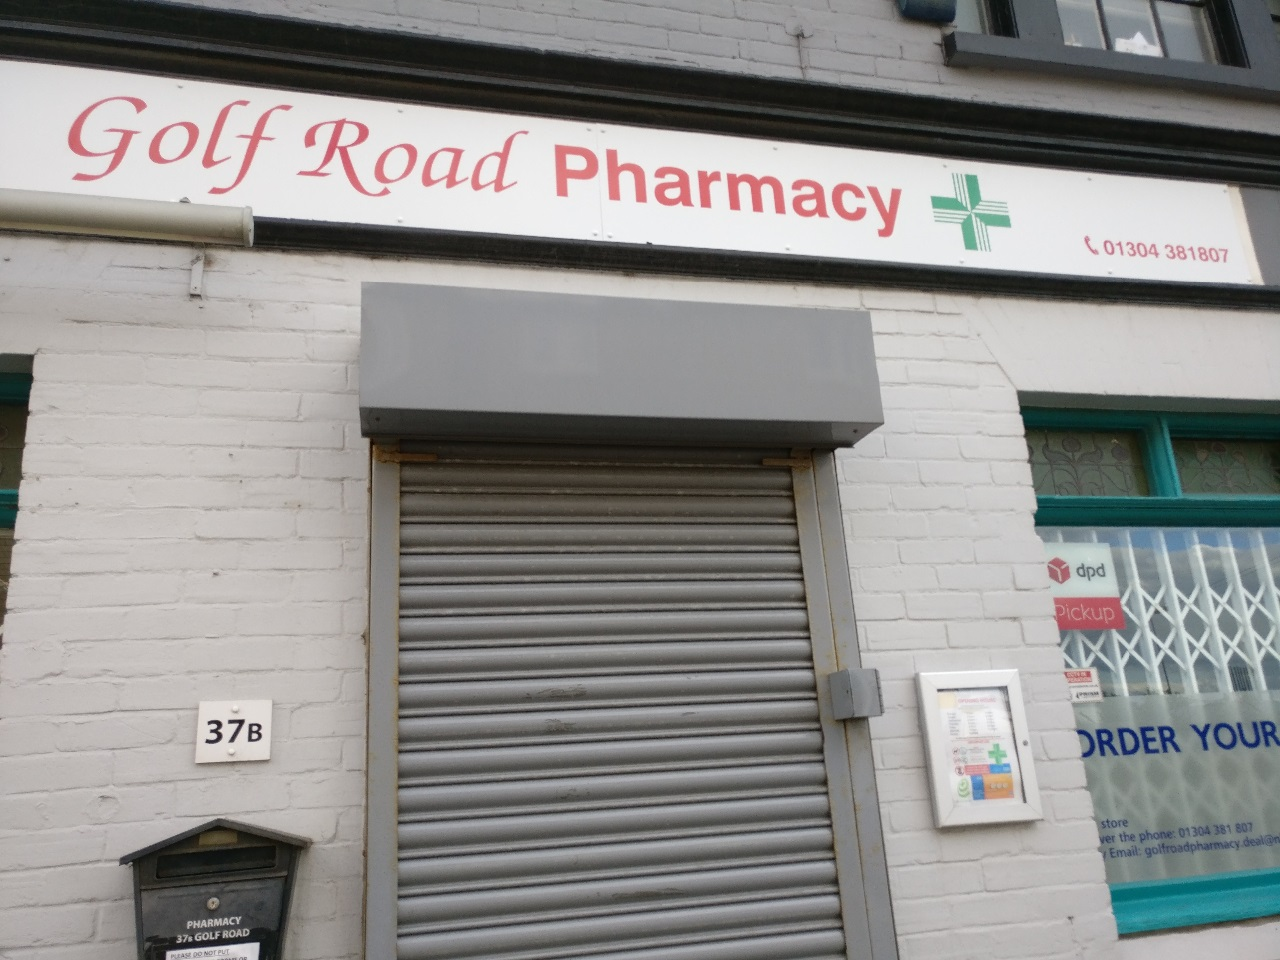 Golf Road Pharmacy